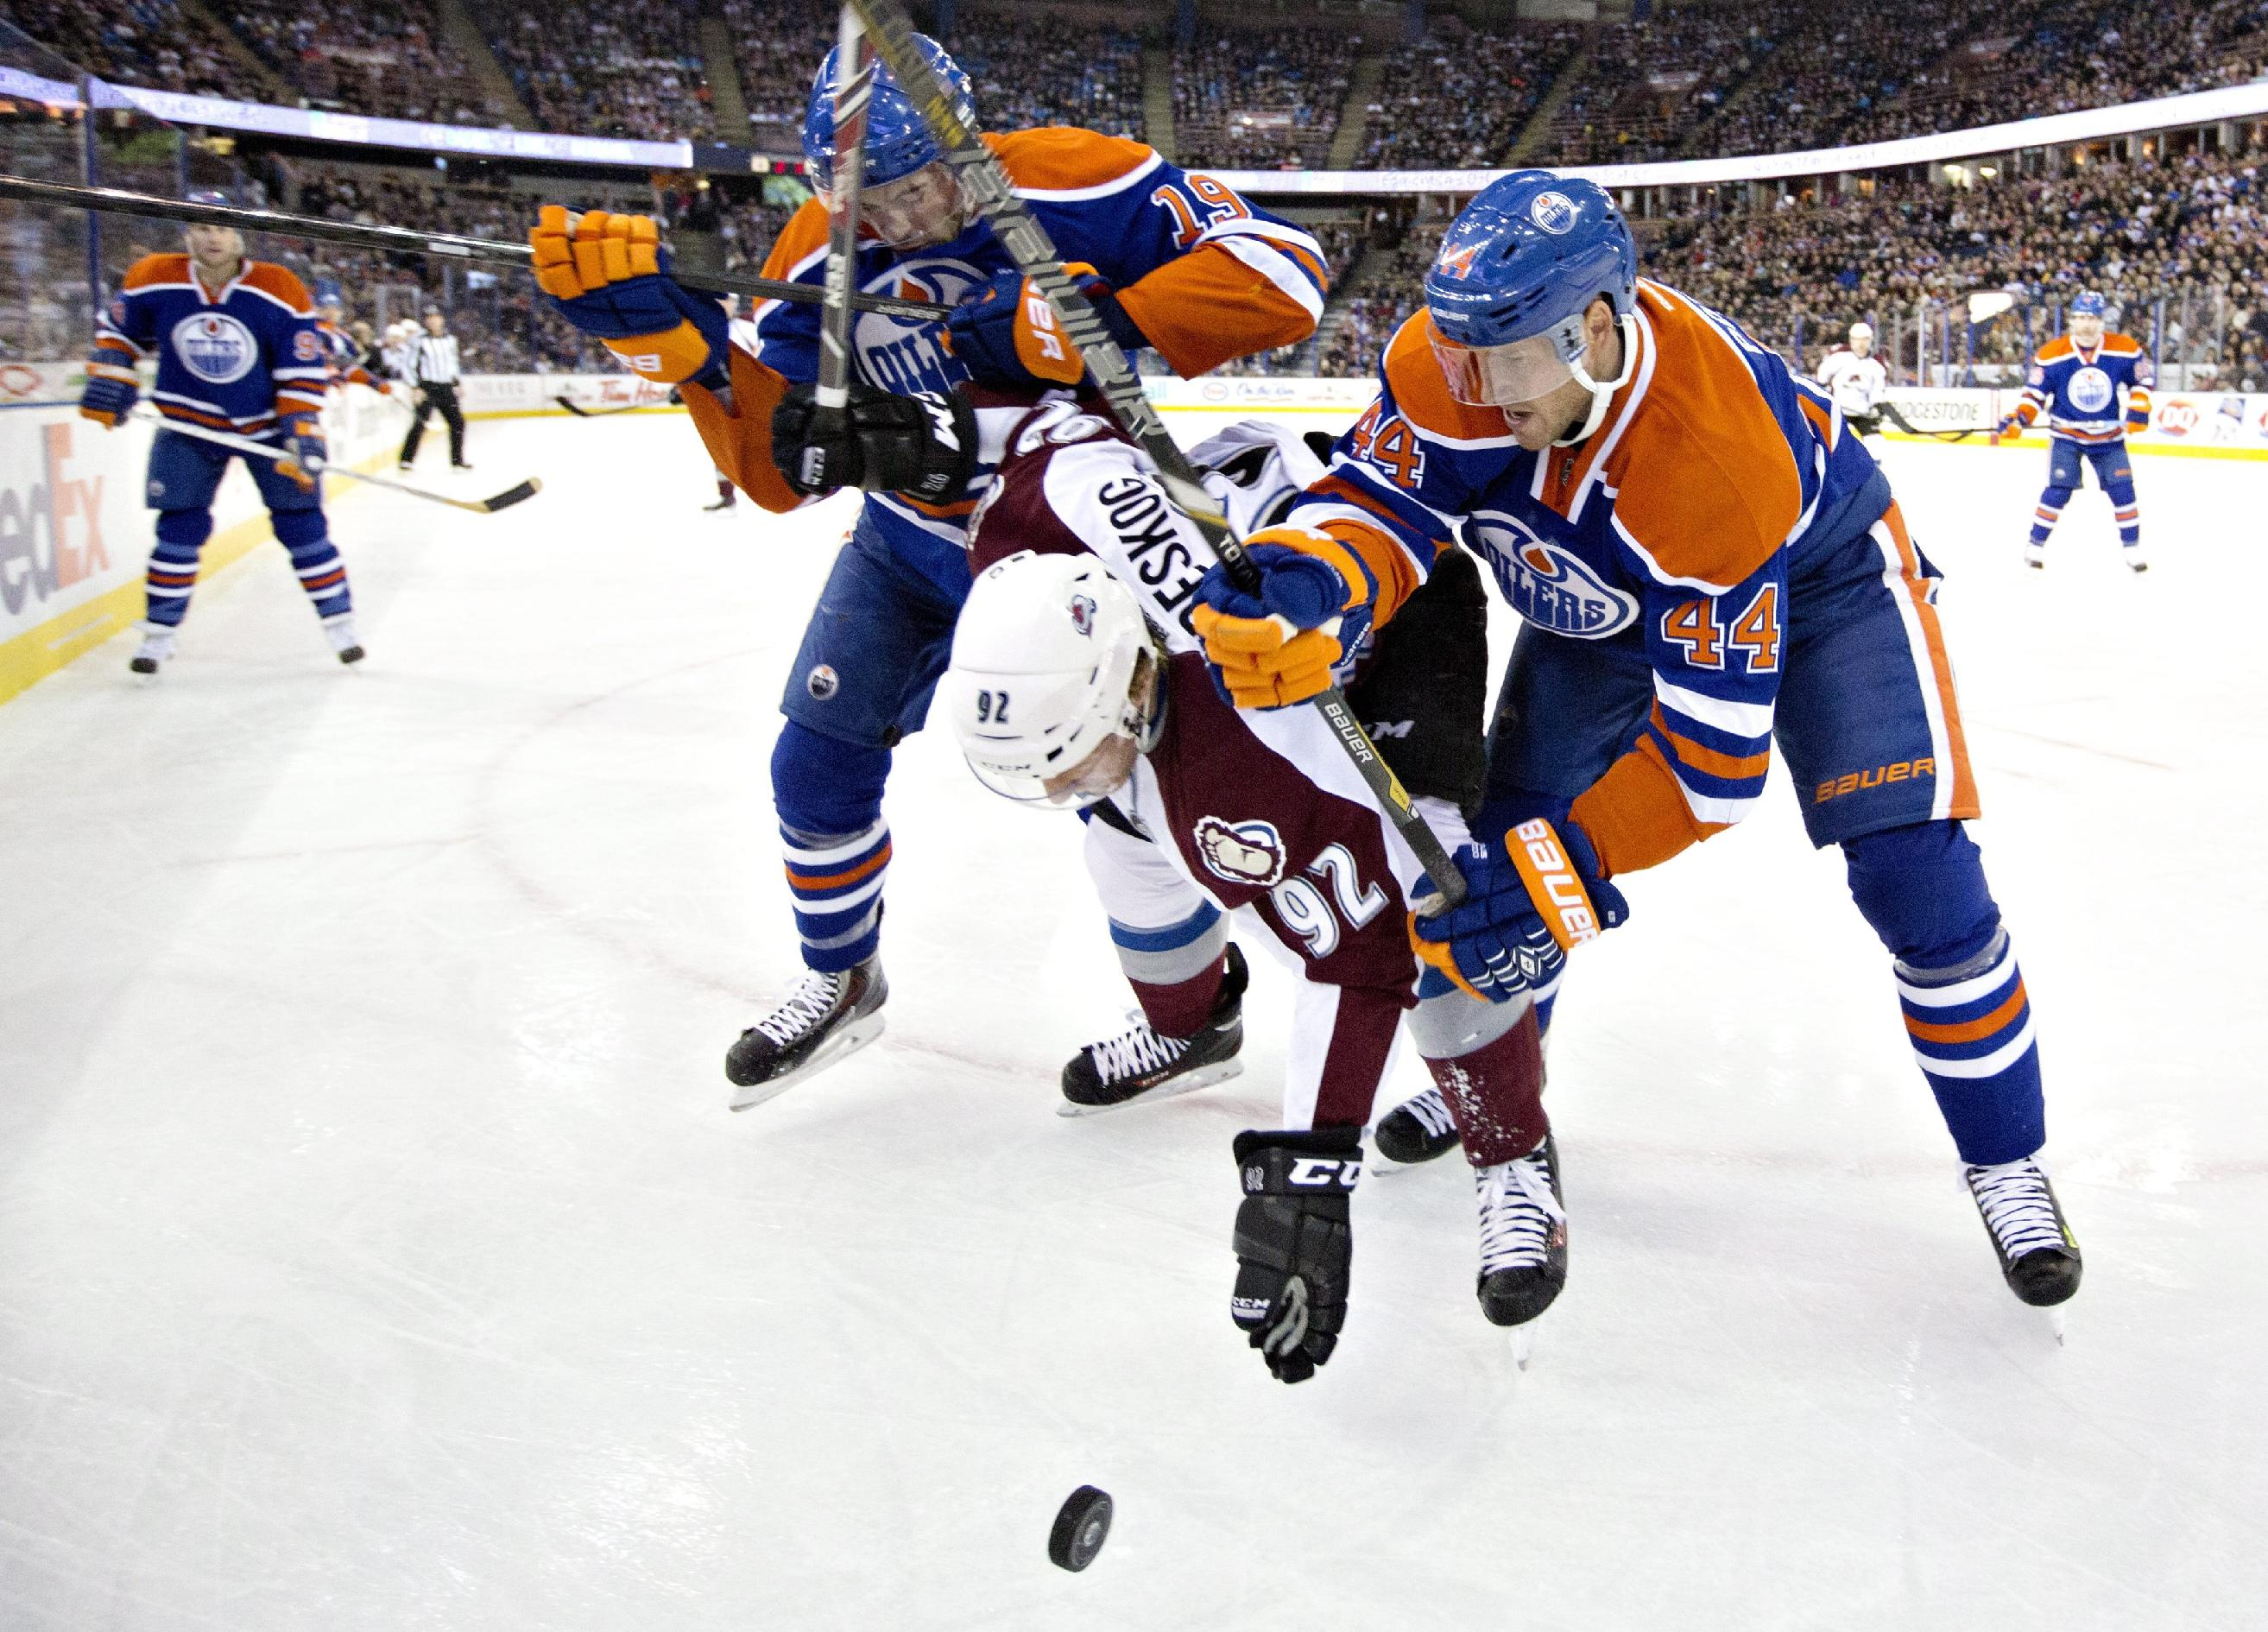 Taylor Hall's hat trick leads Oilers over Avs 8-2